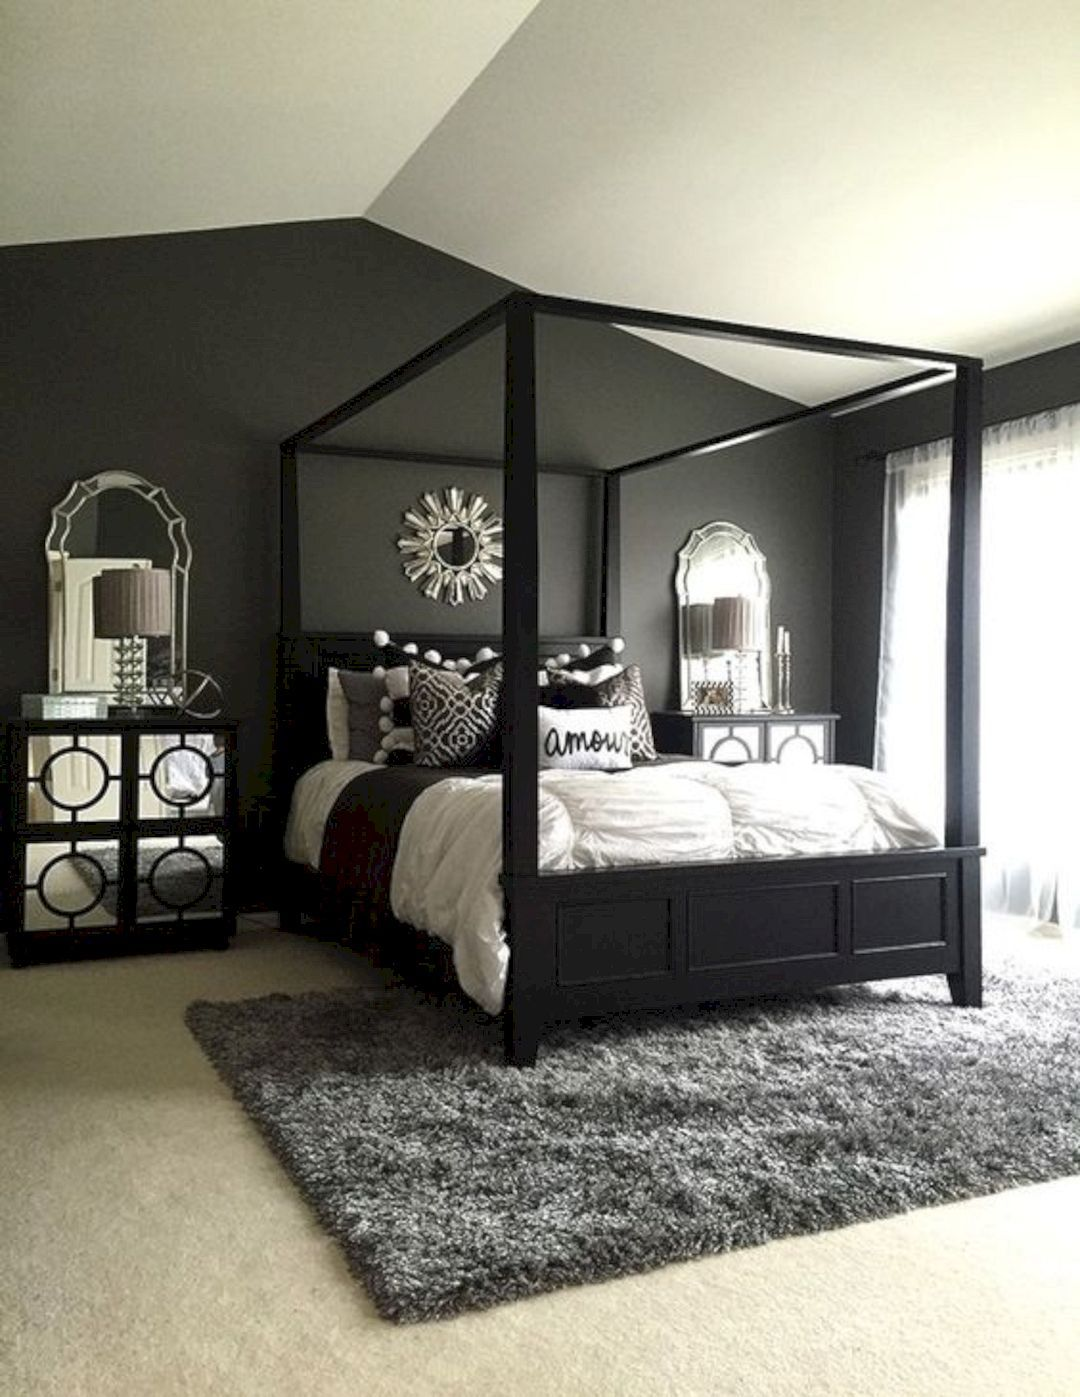 B Ack And White Bedroom Decorating Ideas Html on